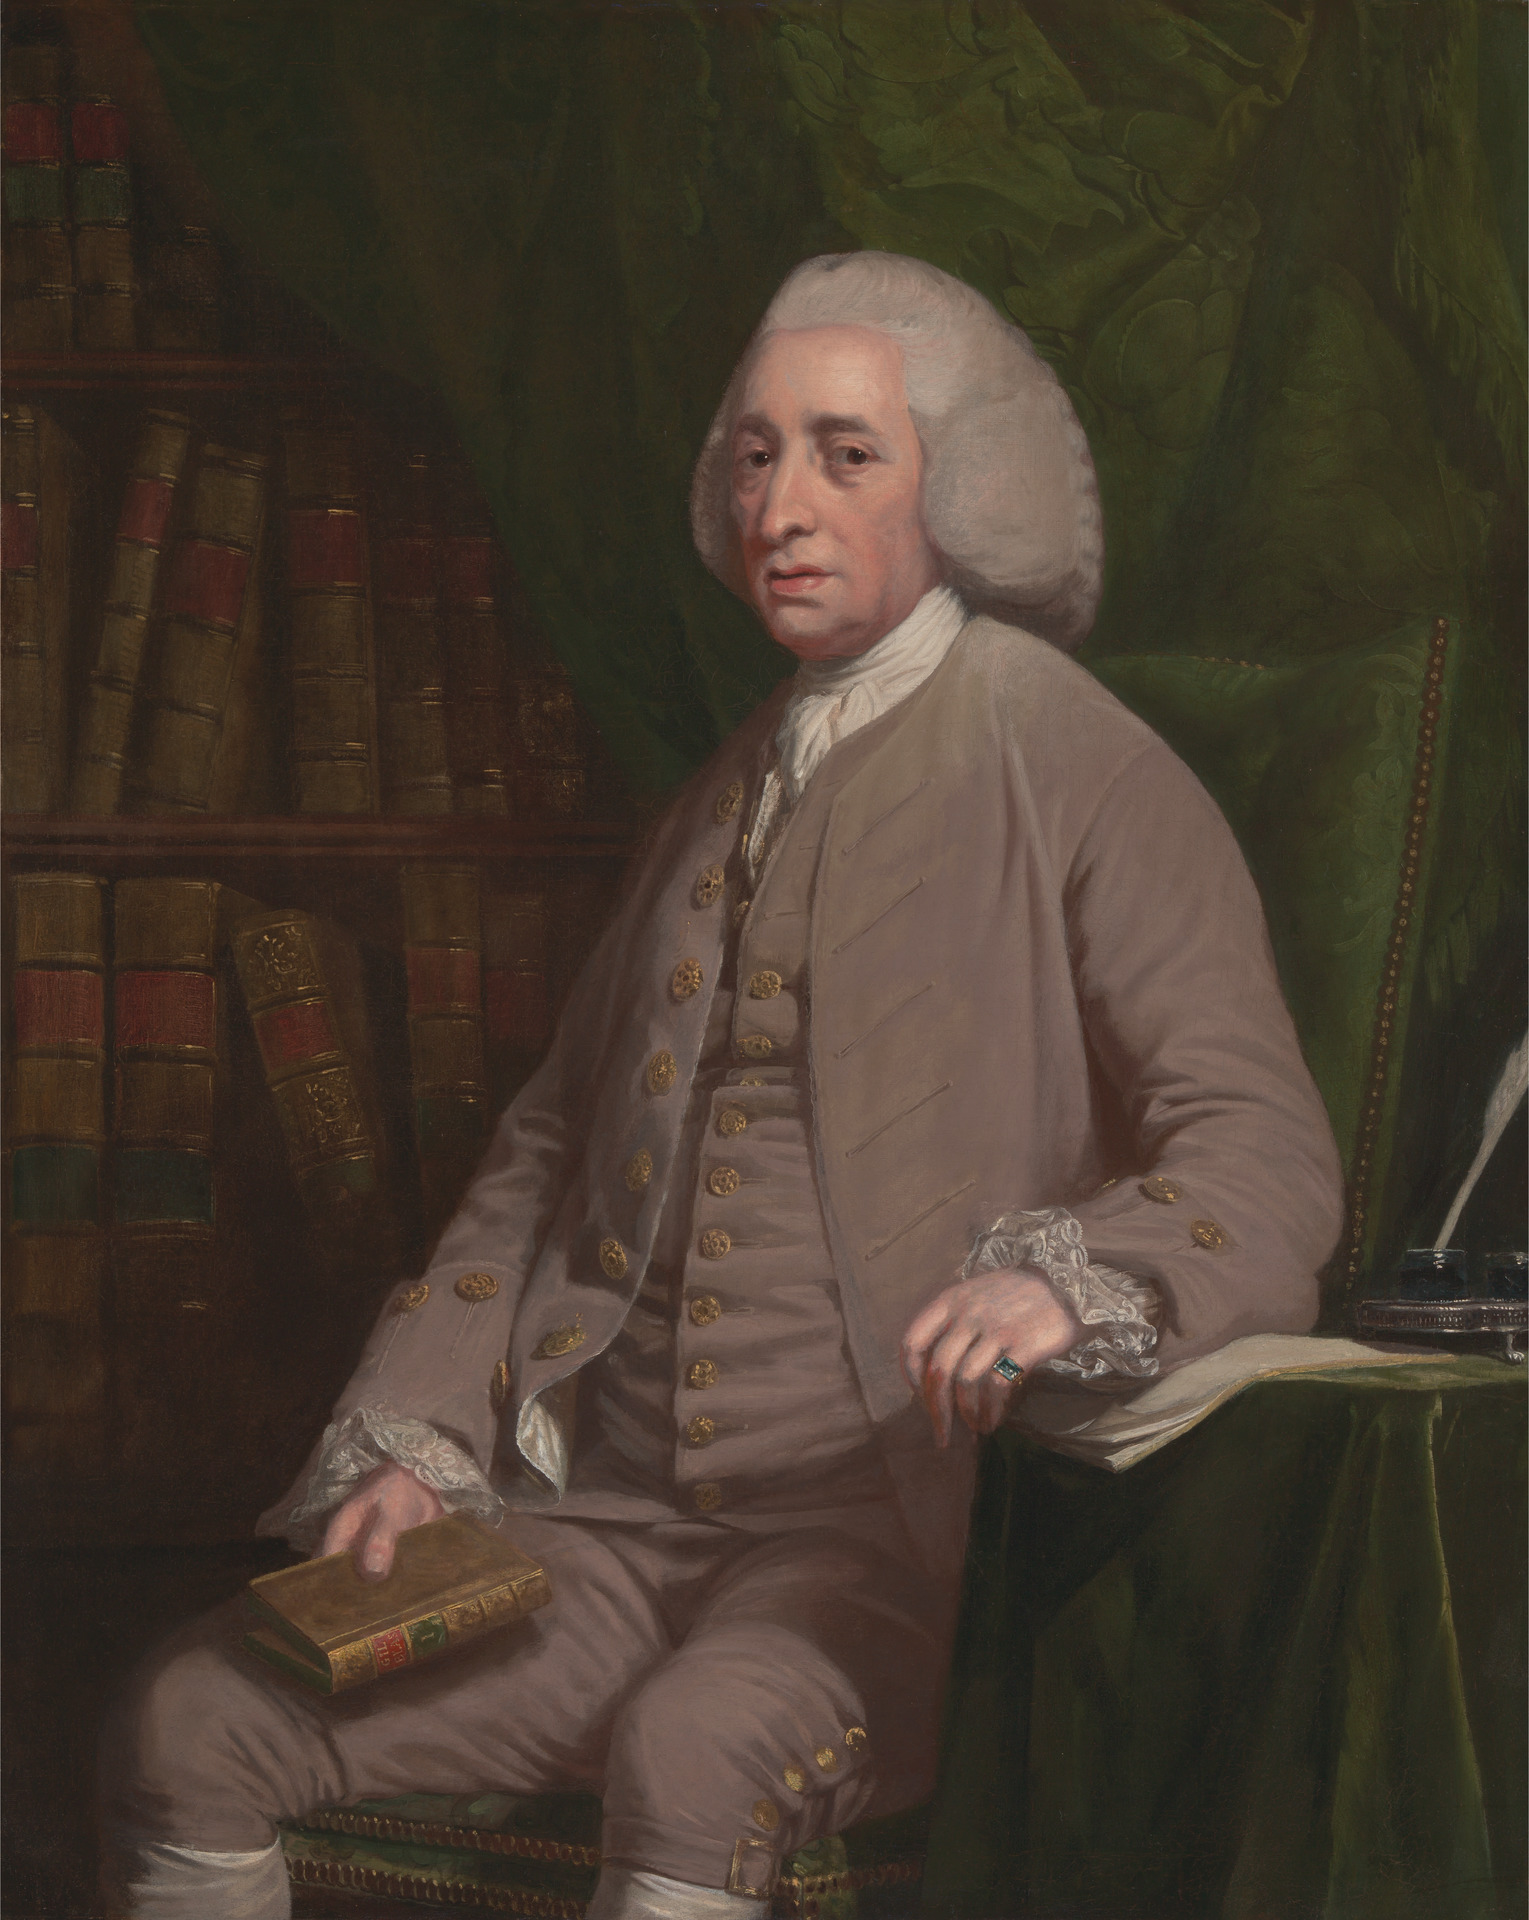 a biography of tobias george smollett a scottish novelist from 18th century Get this from a library tobias smollett, traveler-novelist [george morrow kahrl.